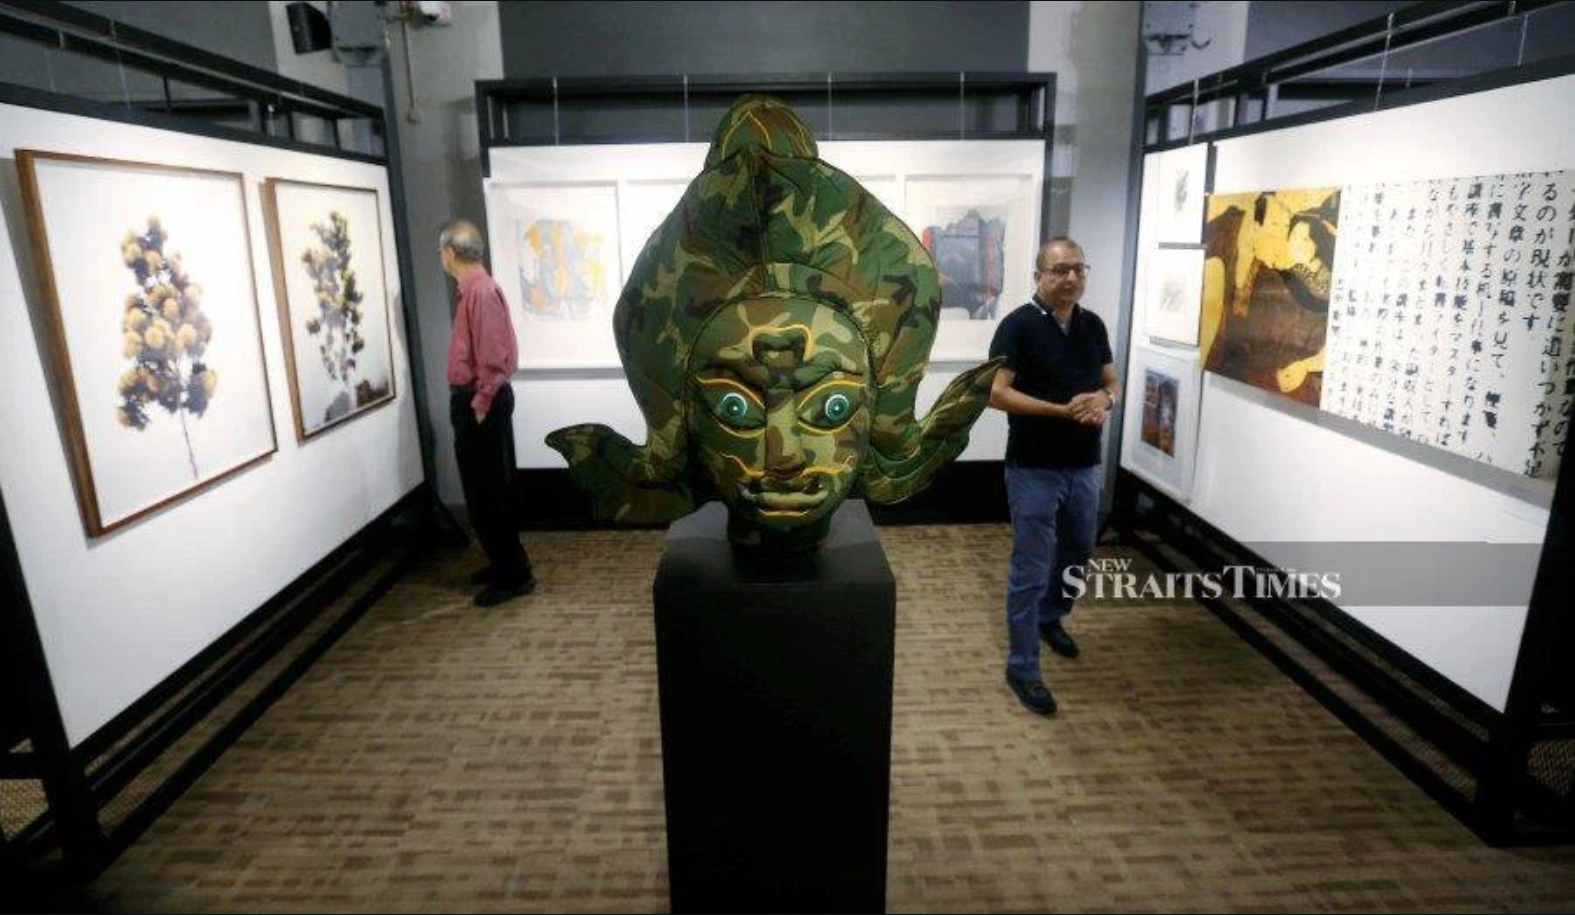 New Straits Times – Henry Butcher Art Auctioneer's Recent Art Auction Bears Testament To The Nation's Thriving Art Market